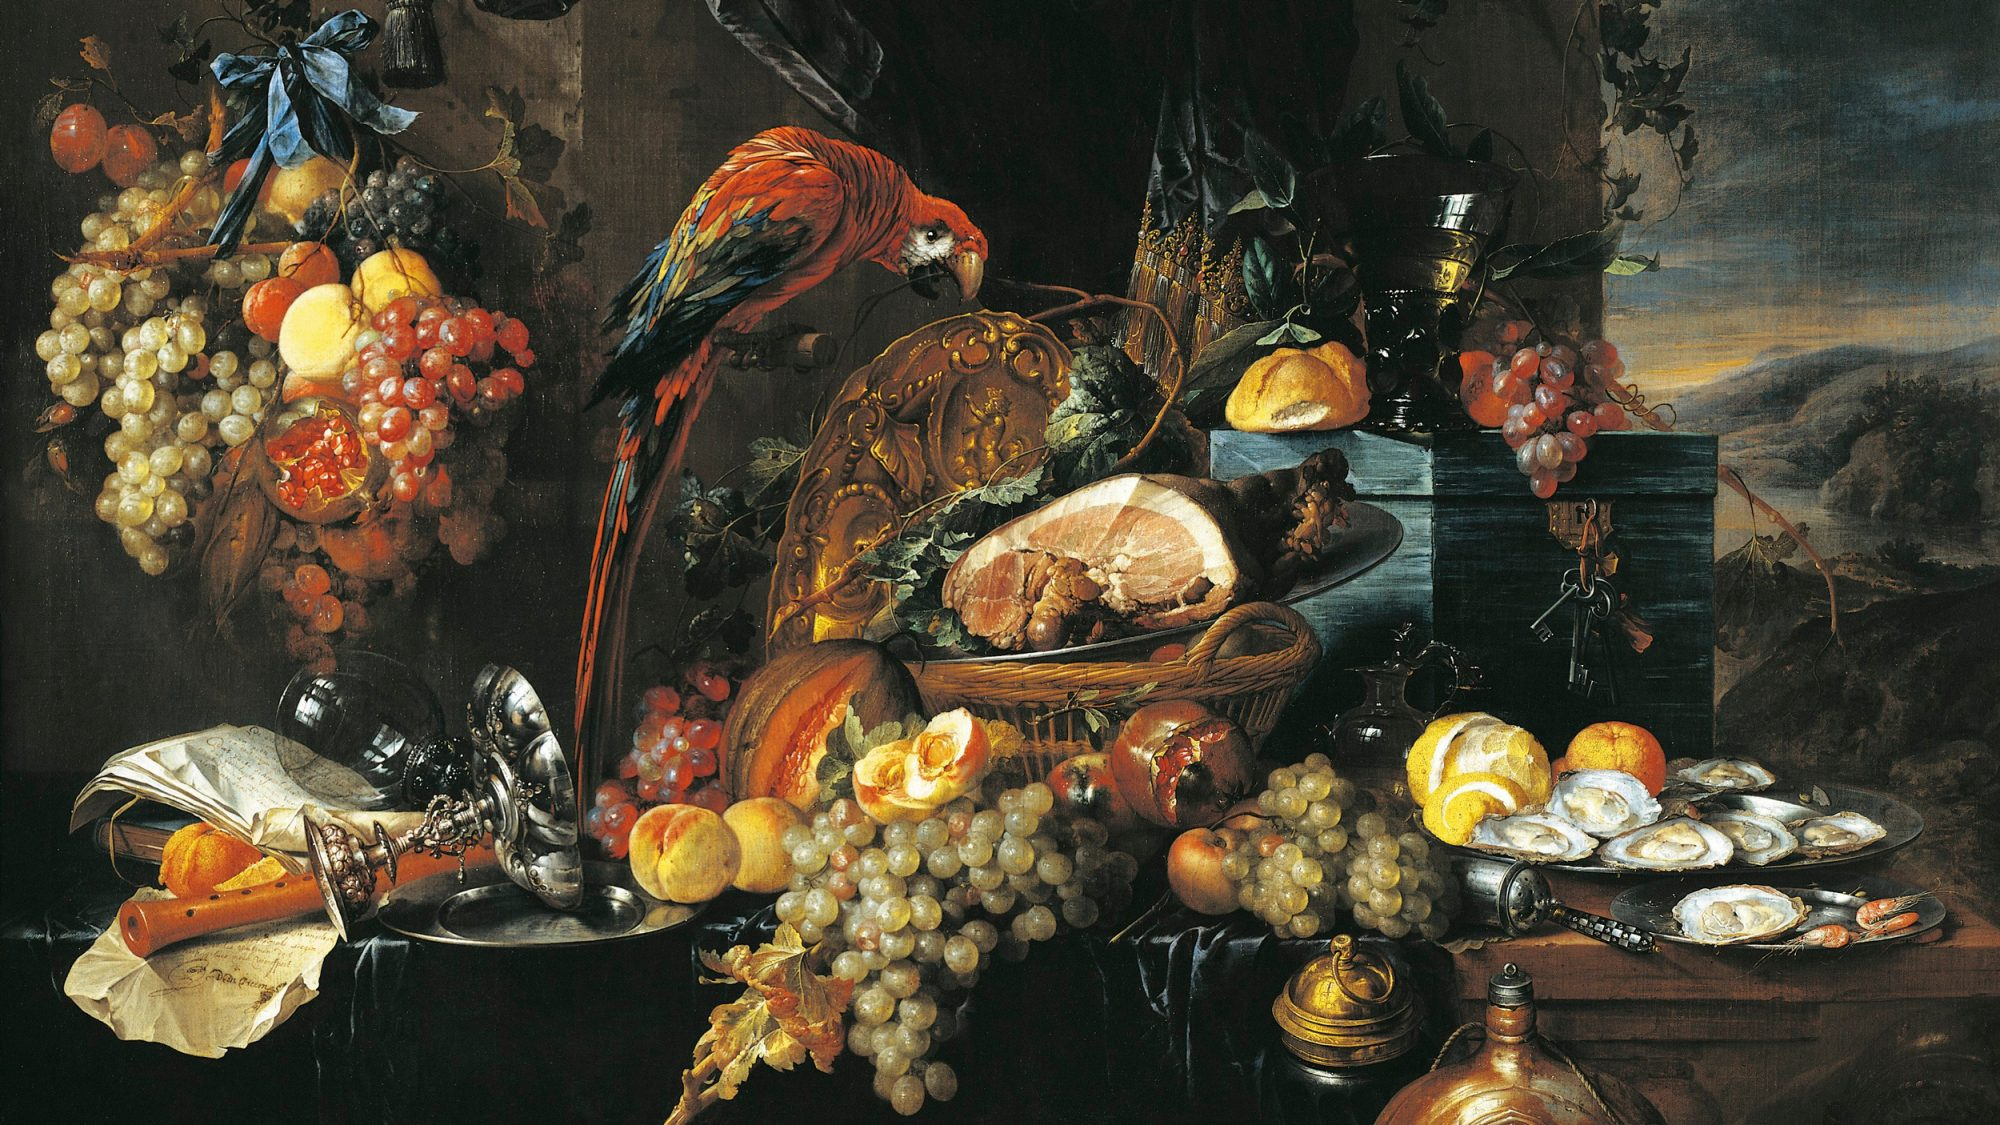 Old World Kitchen Renaissance Food Paintings Were Meant To Induce Fomo